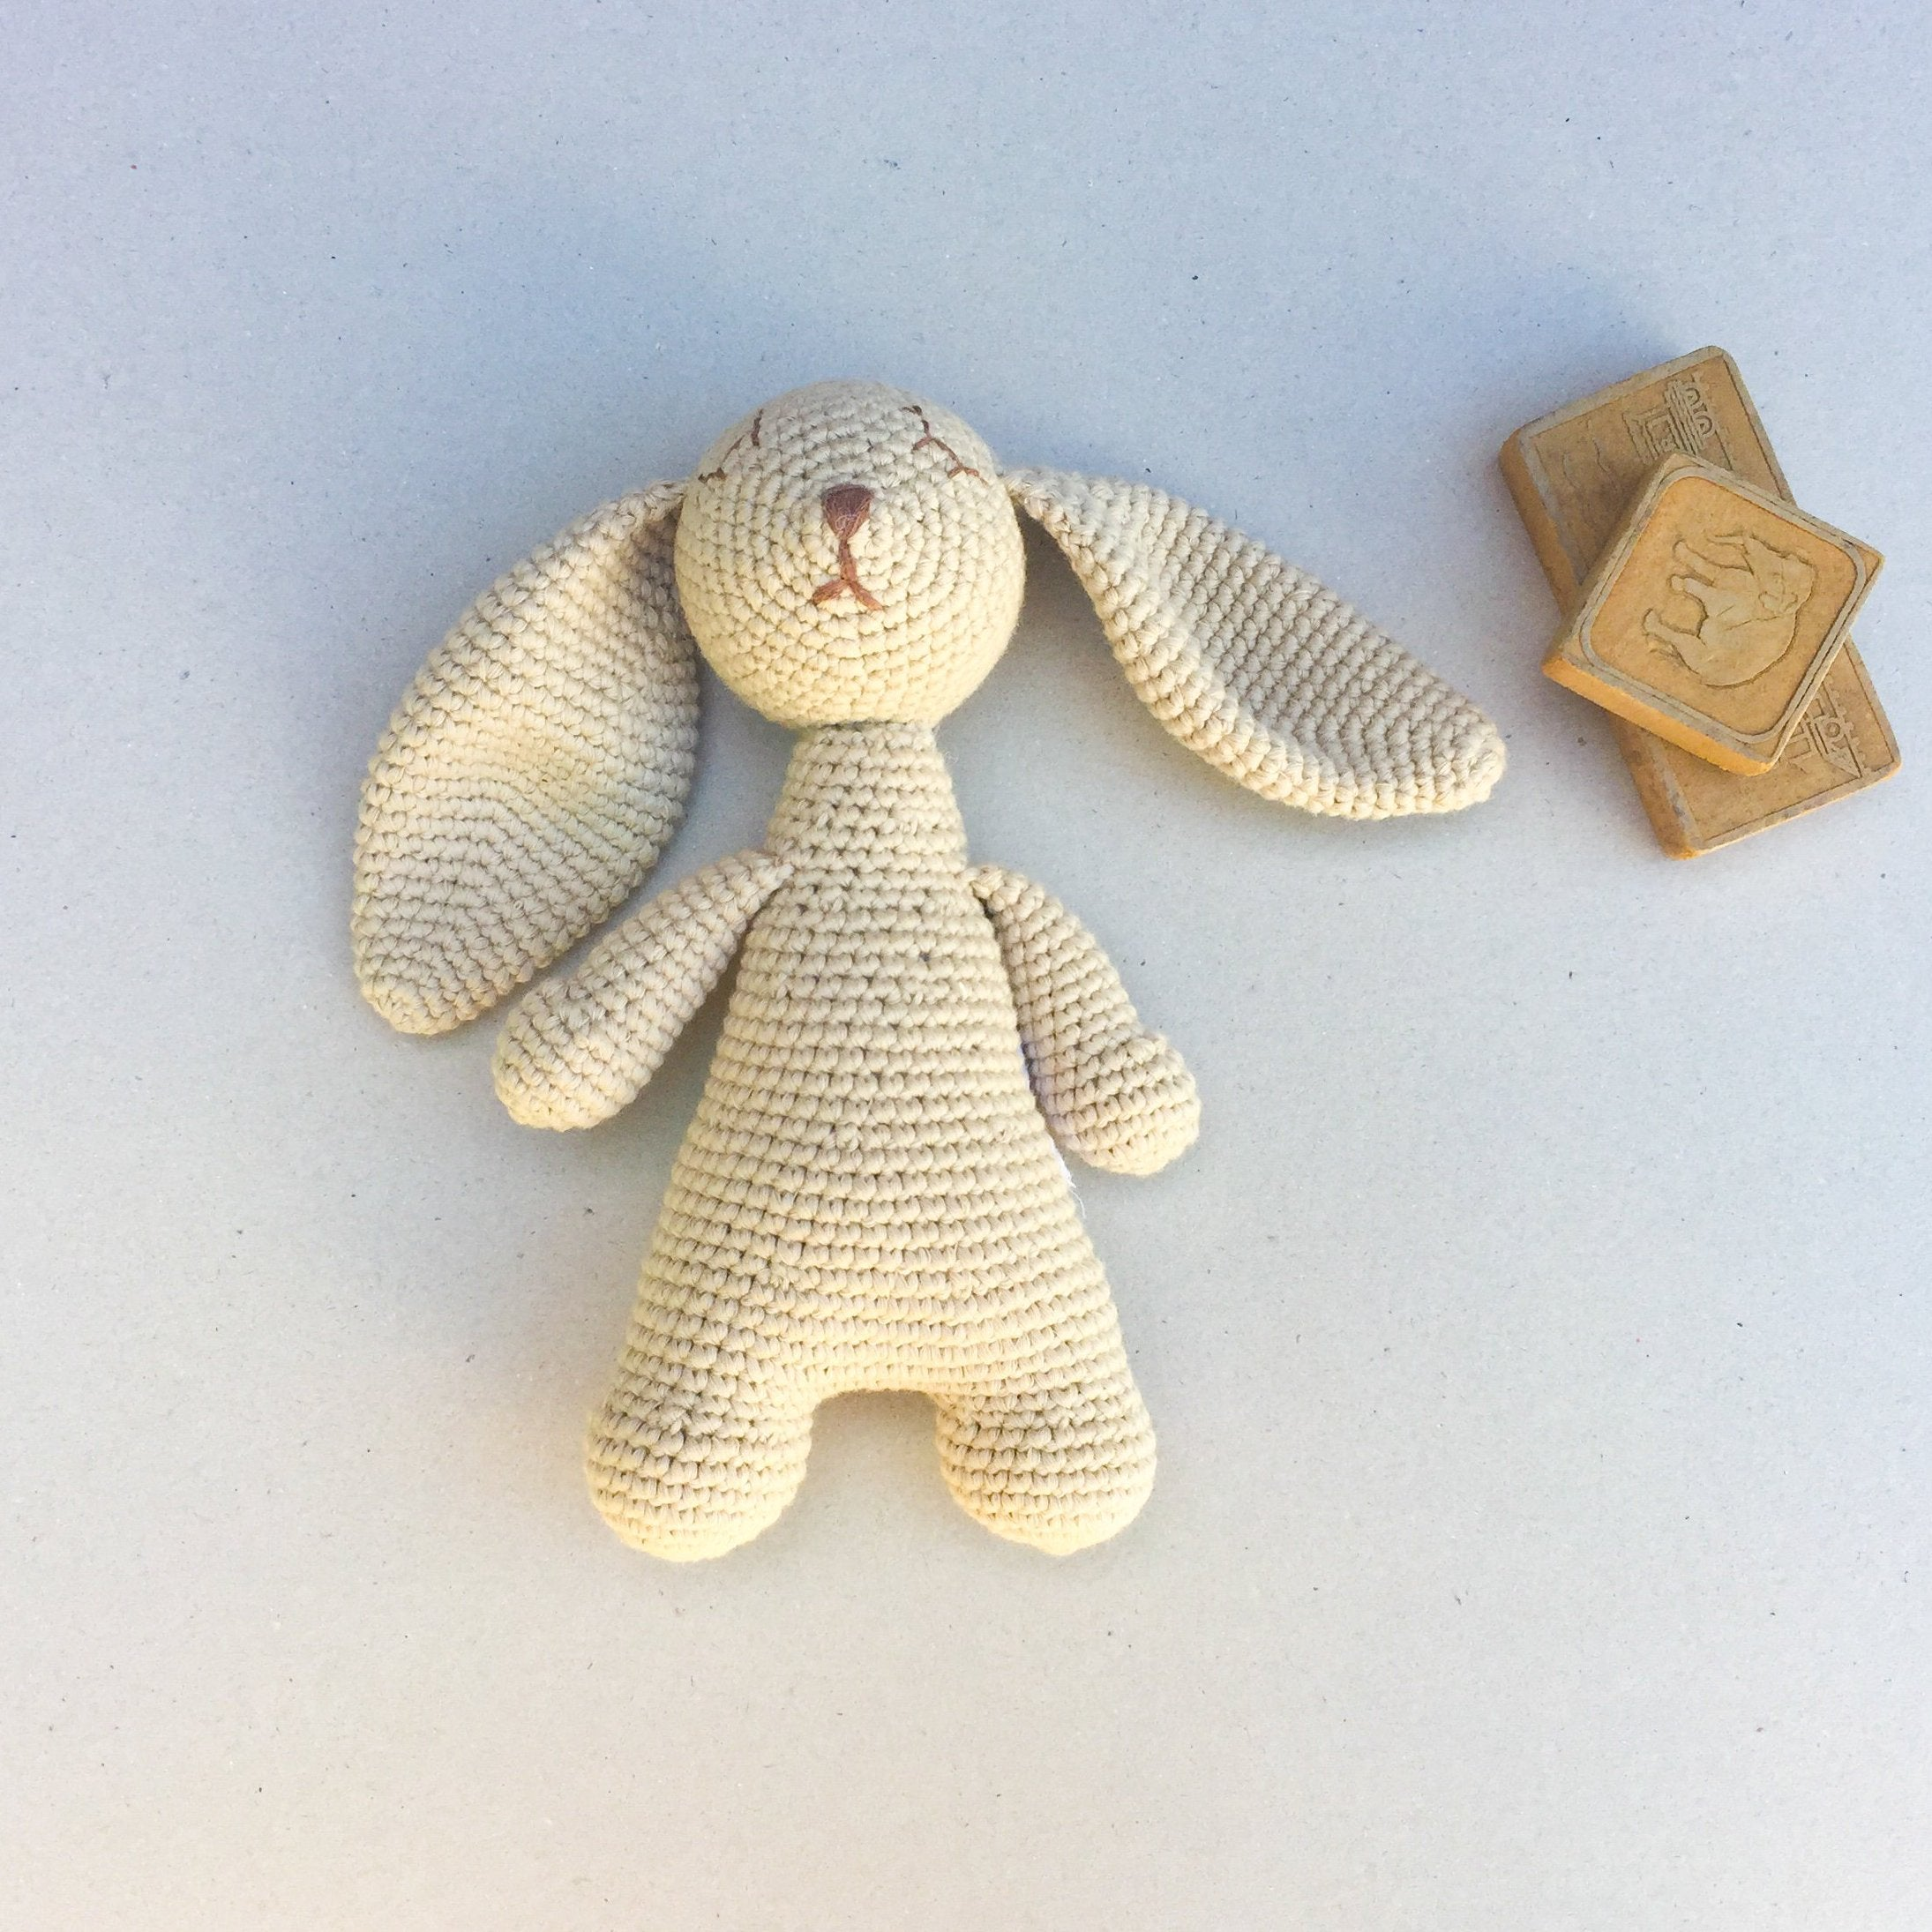 Sleeping Riley the Little Rabbit - Vanilla Bean - babyragsnstuff